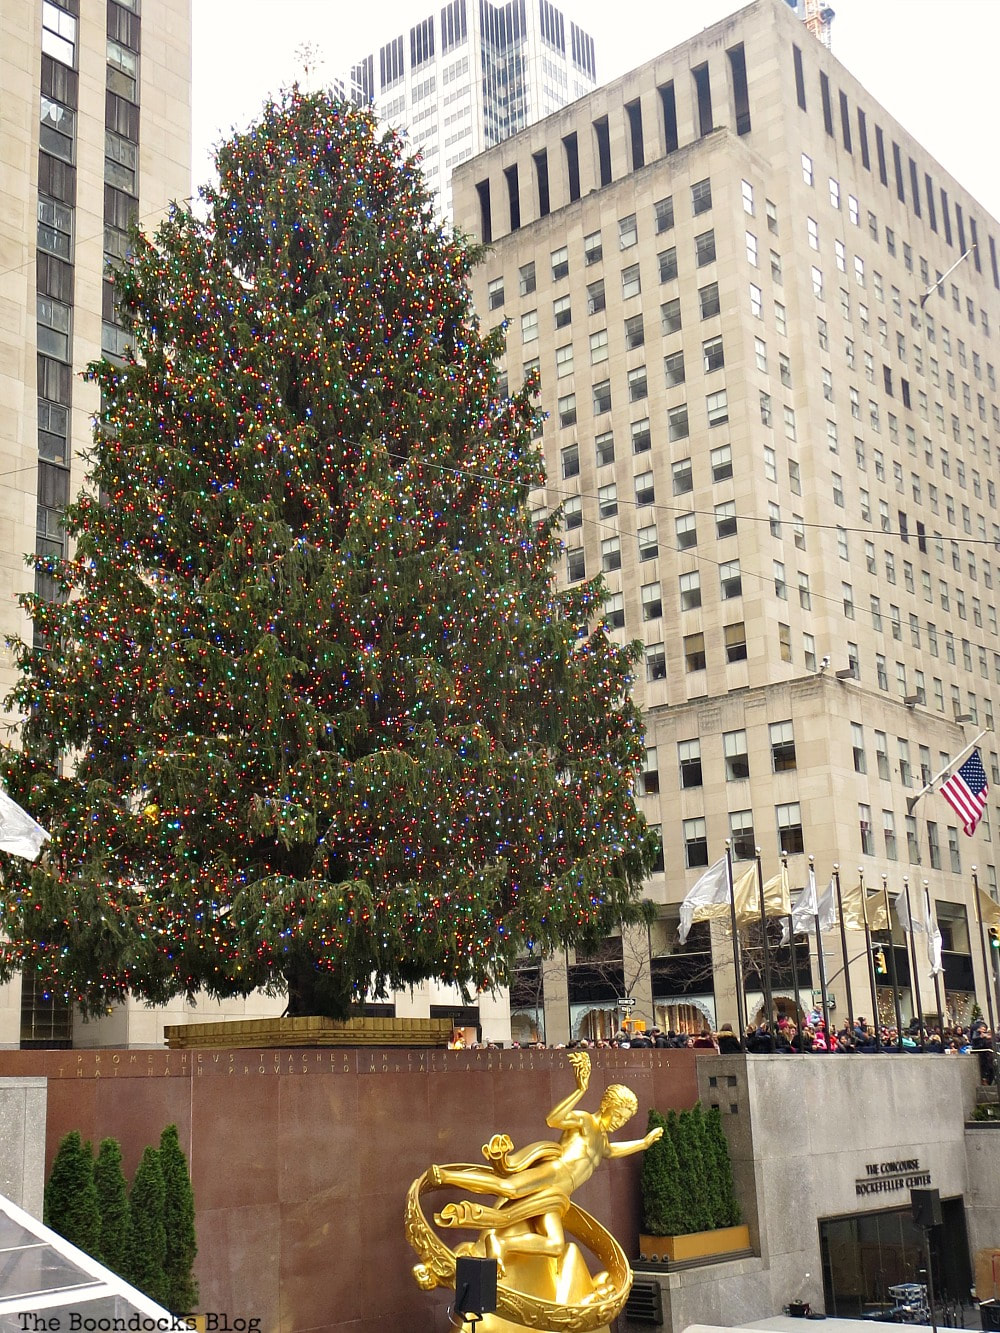 The Christmas tree towering over the Prometheus statue at Rockefeller center, #newyork #photoessay #photography #rockefellercenter #Christmastree #prometheusstatue #Christmasmood A Visit to the Spectacular Tree at Rockefeller Center www.theboondocksblog.com